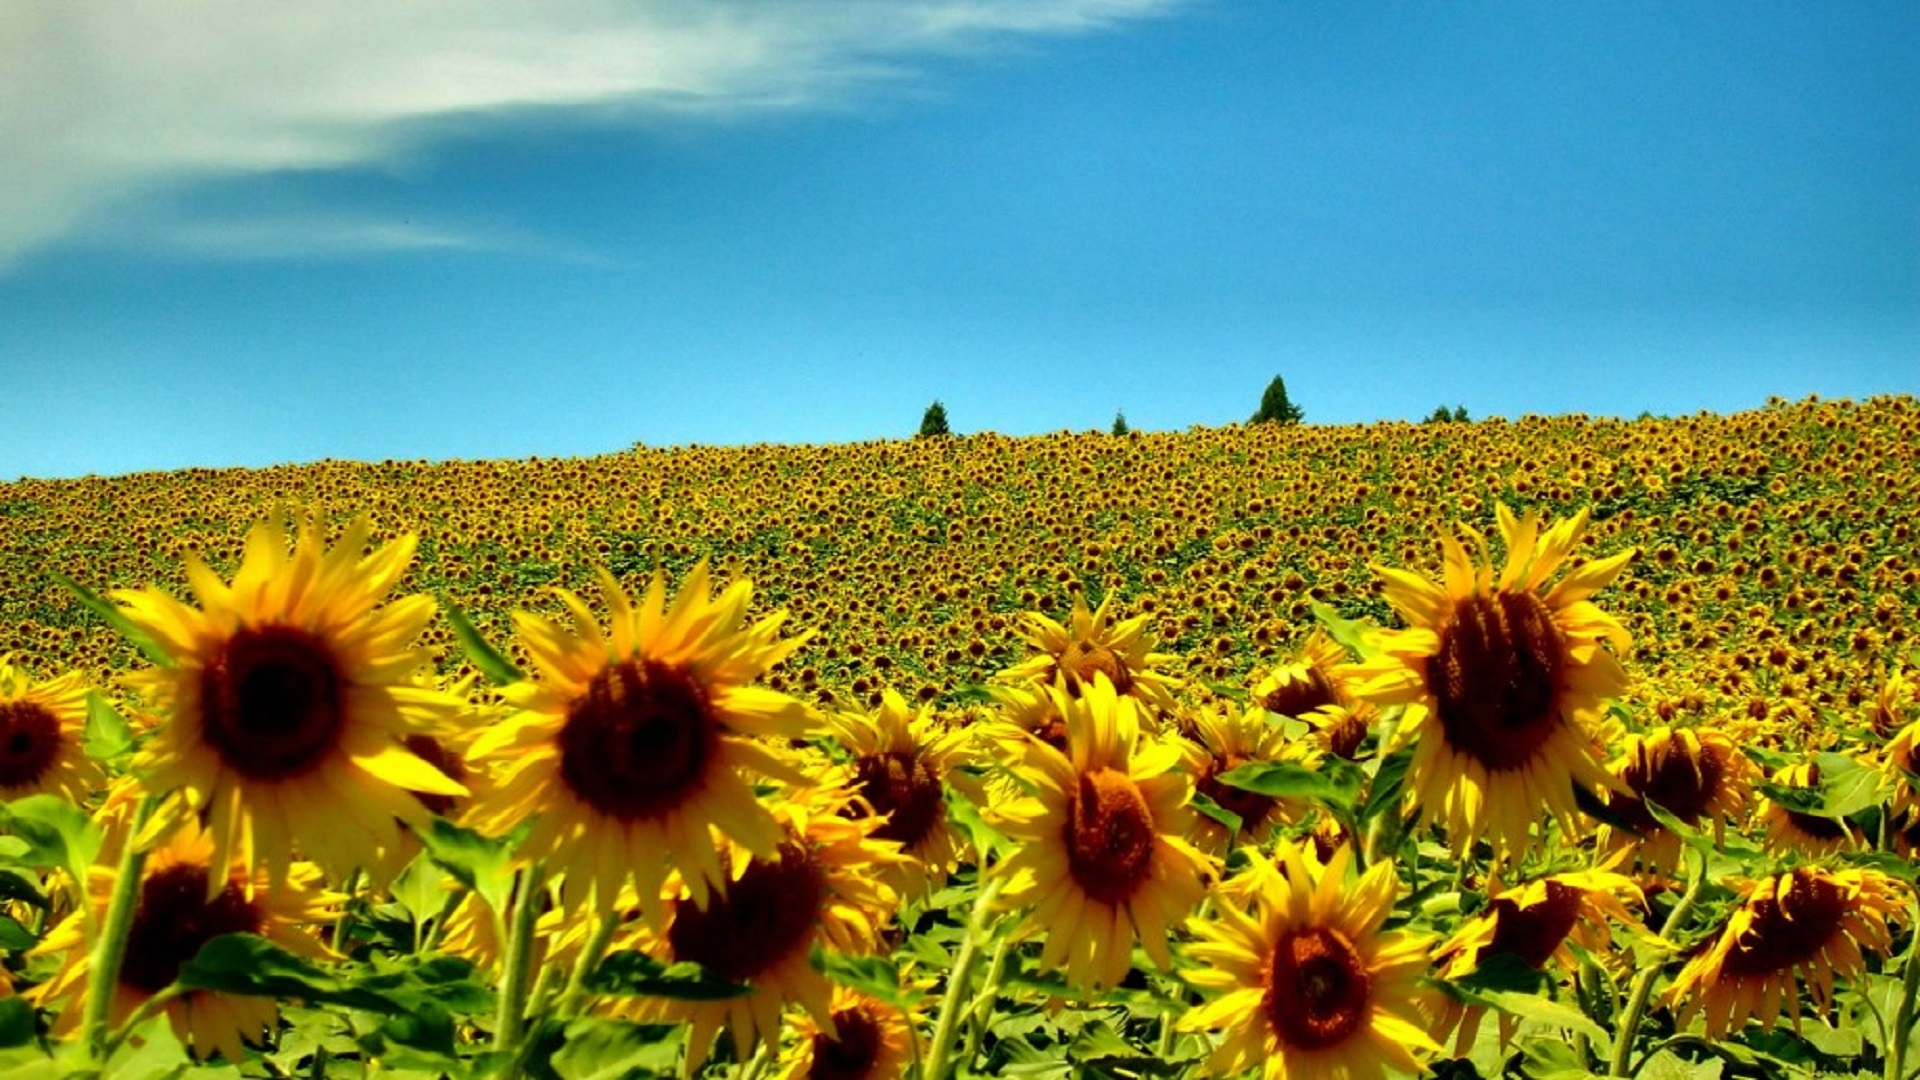 sunflowers summer season hd free wallpapers for desktops free